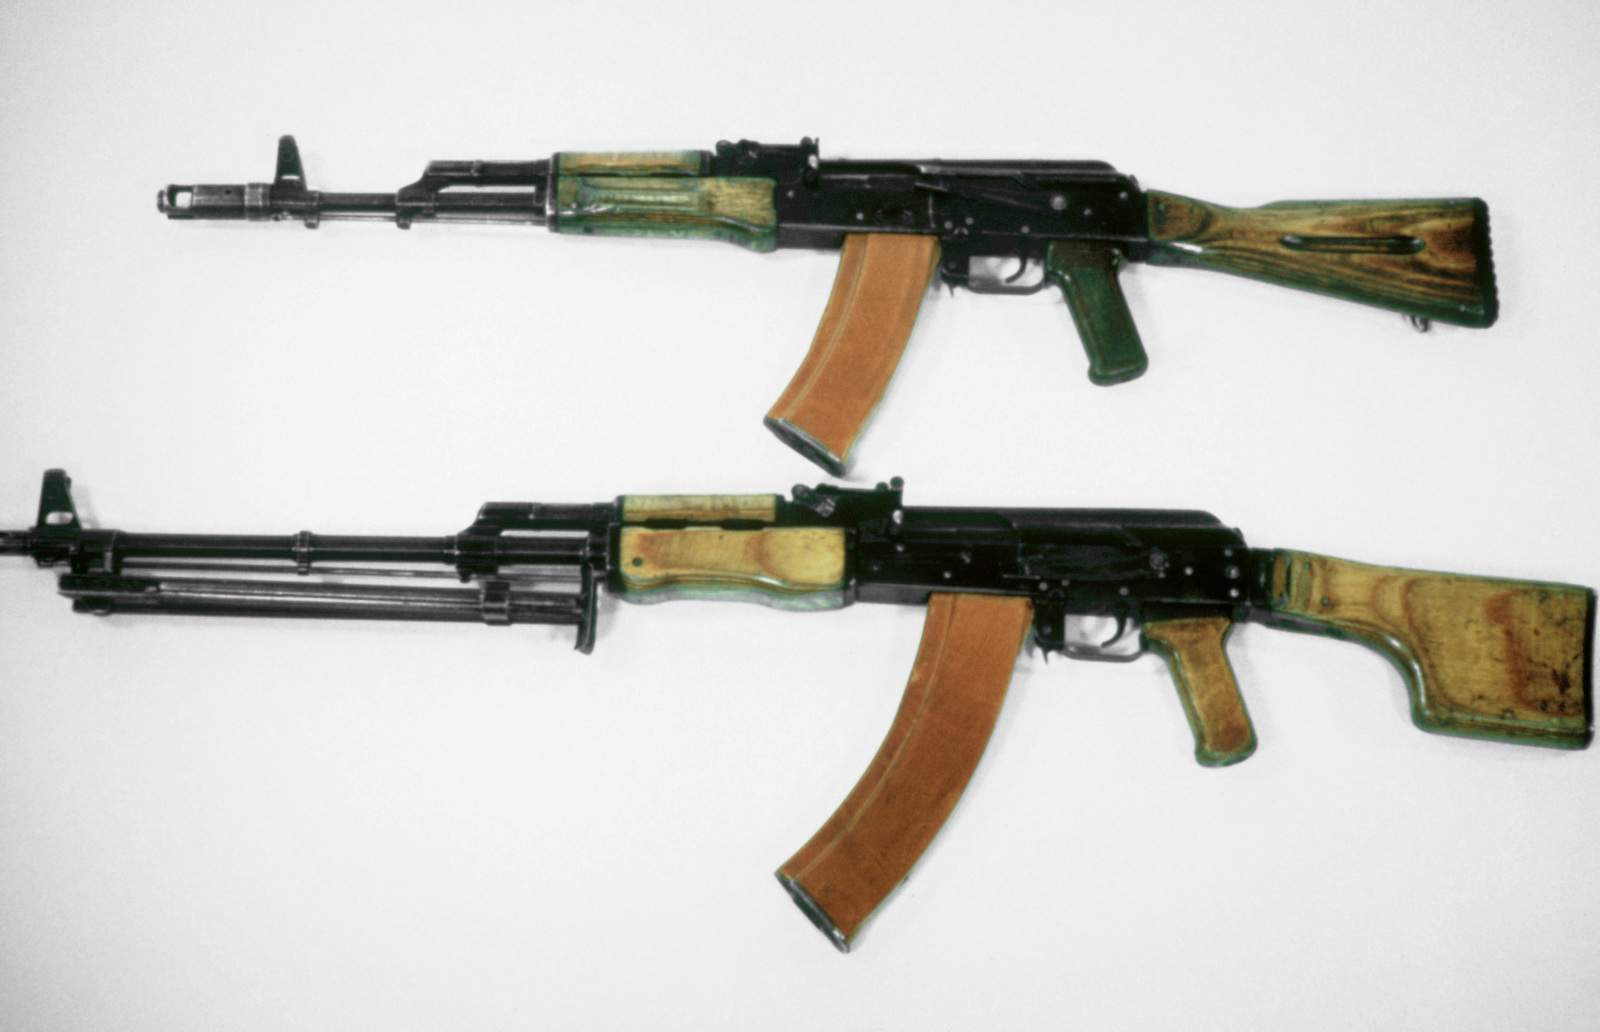 A left side view of a 5 45mm Soviet AK-74 assault rifle, top, and a